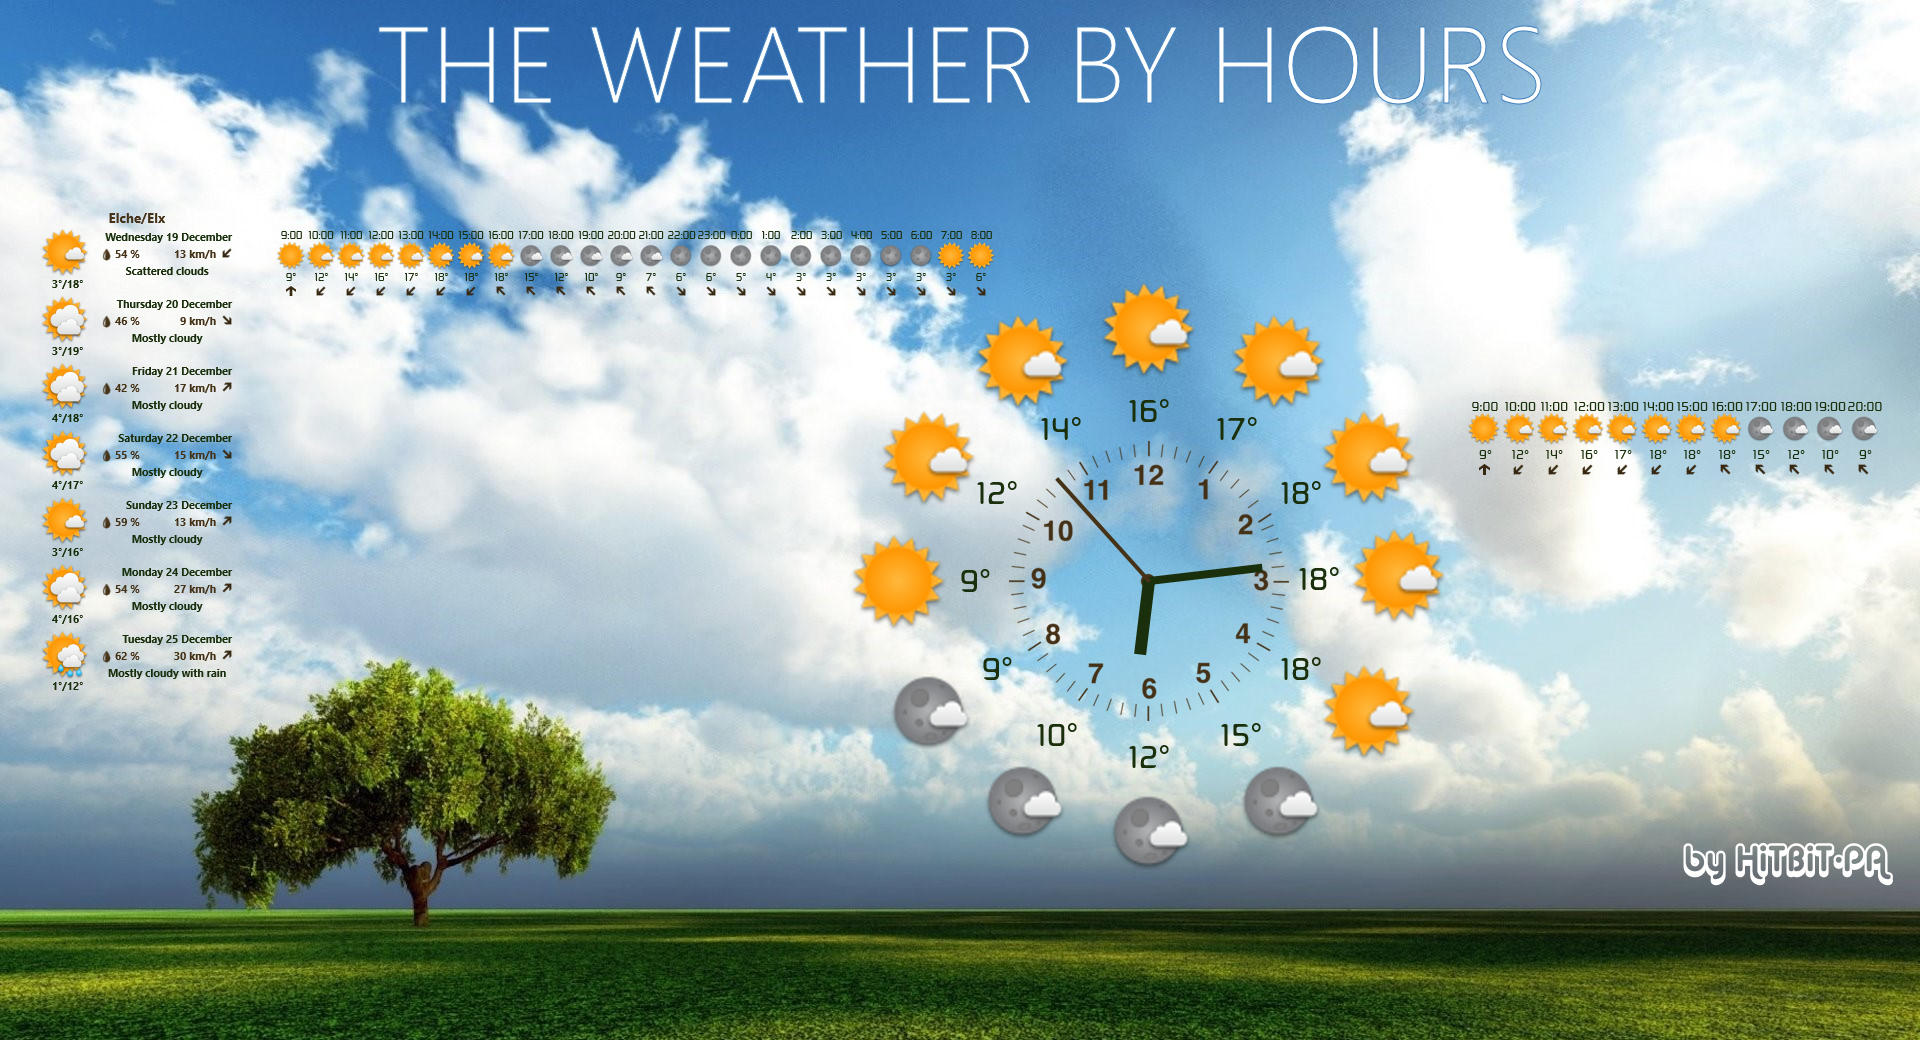 The weather by hours 2.019 by HiTBiT-PA